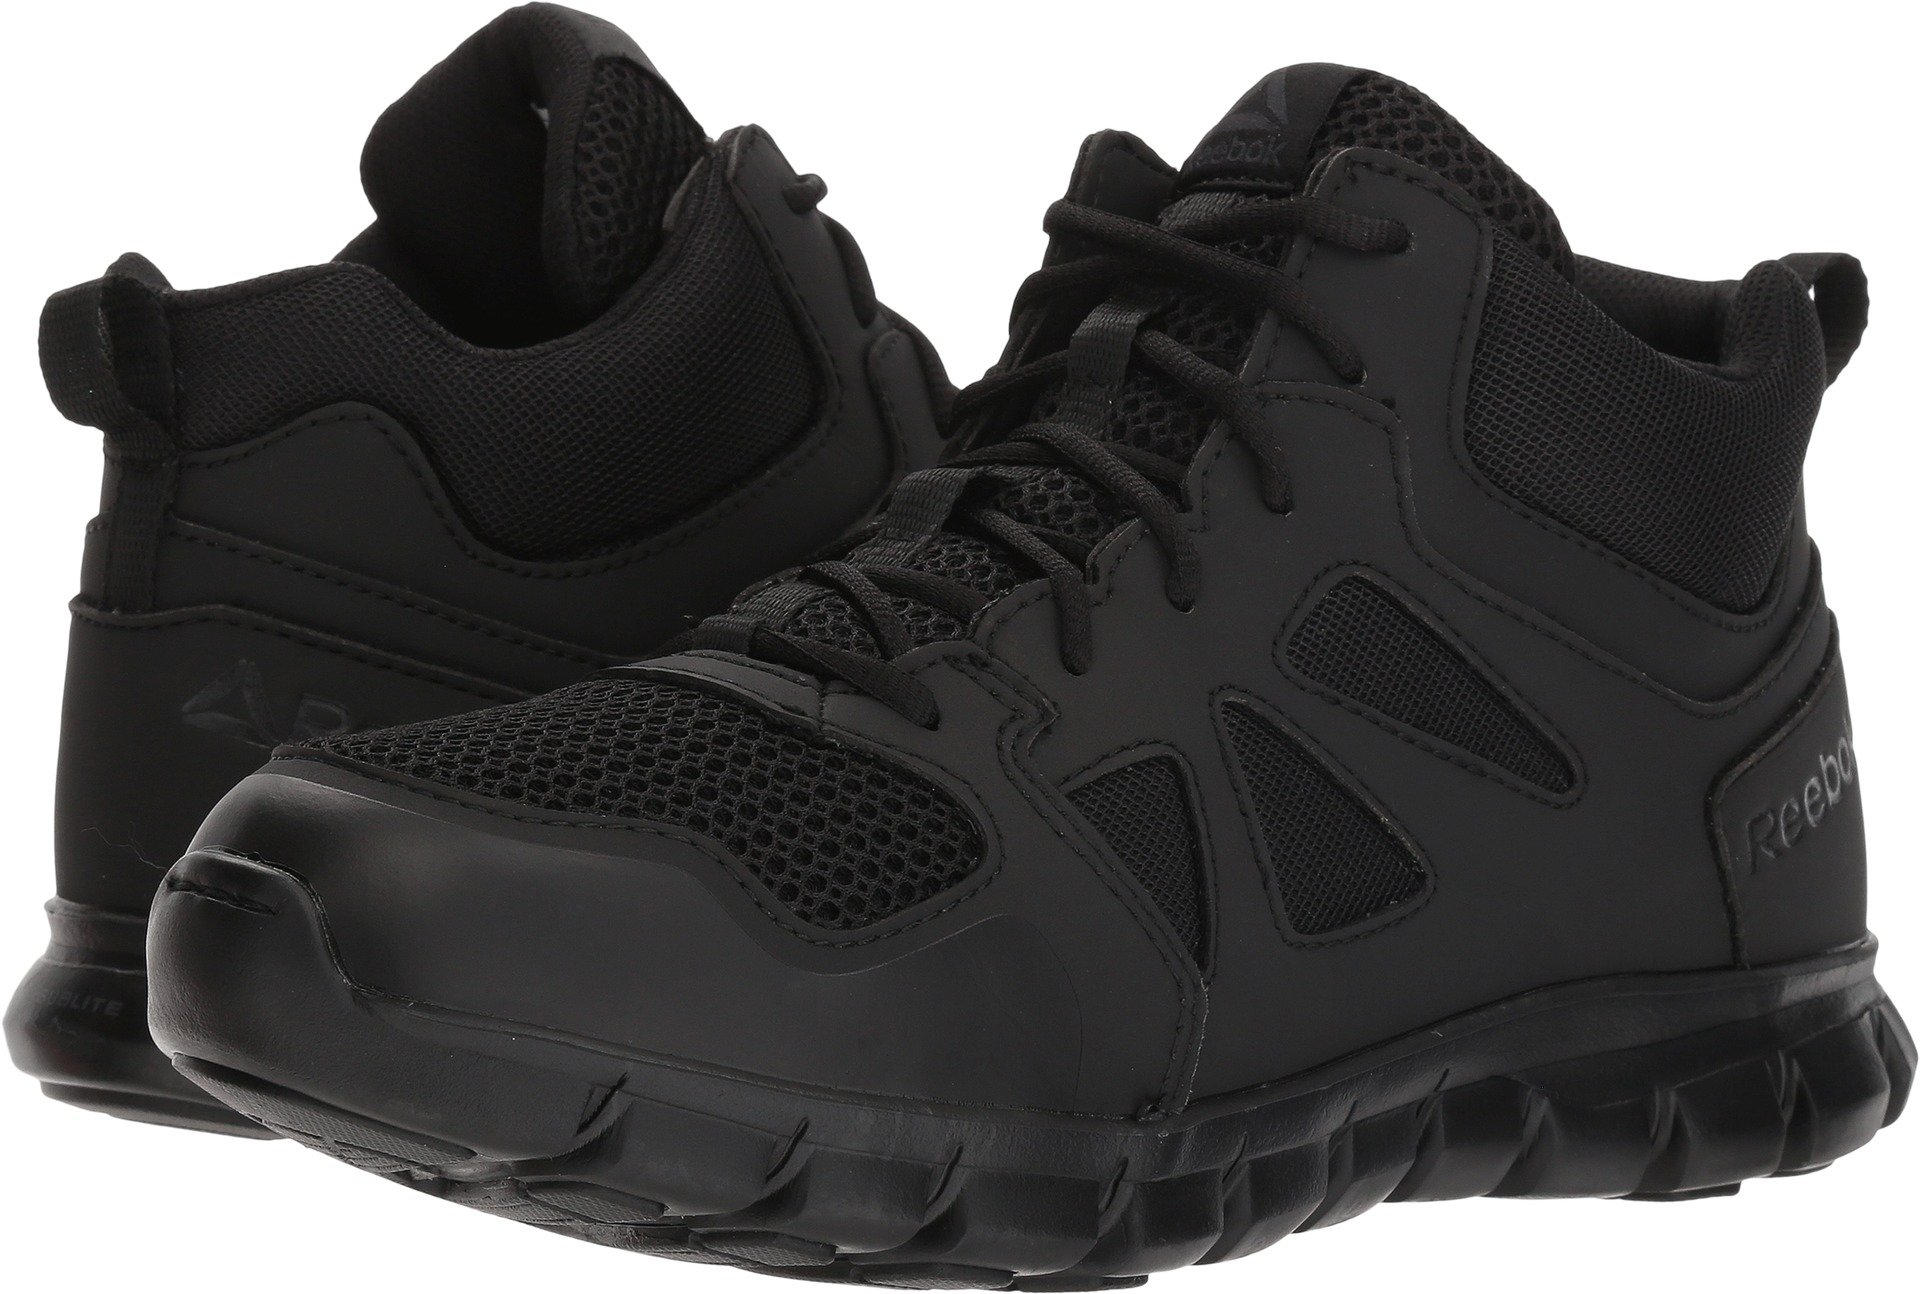 Reebok Men's Sublite Cushion RB8405 Military and Tactical Boot, Black, 10.5 W US